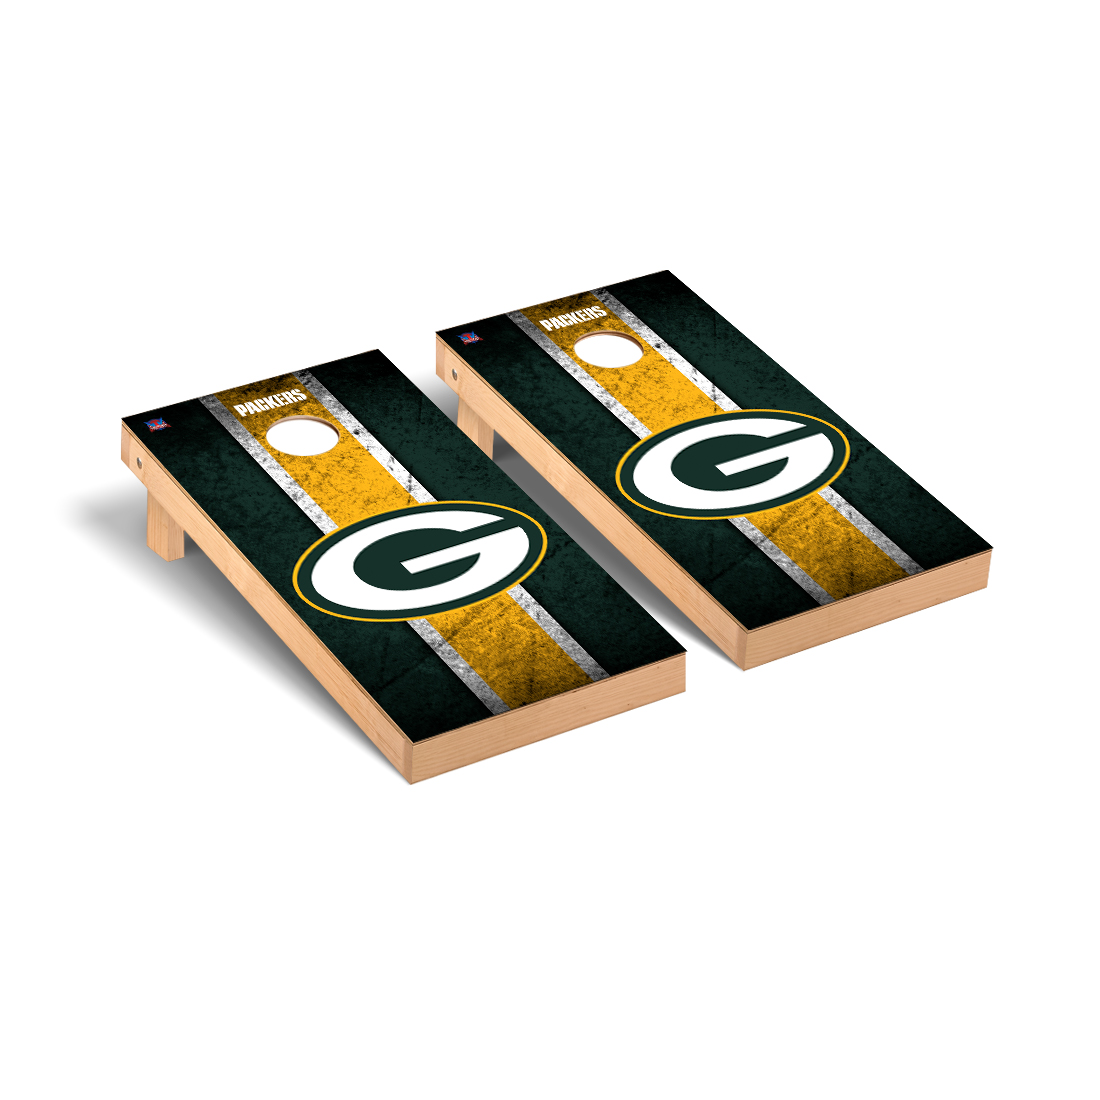 Green Bay Packers NFL Football Cornhole Game Set Vintage Version 2